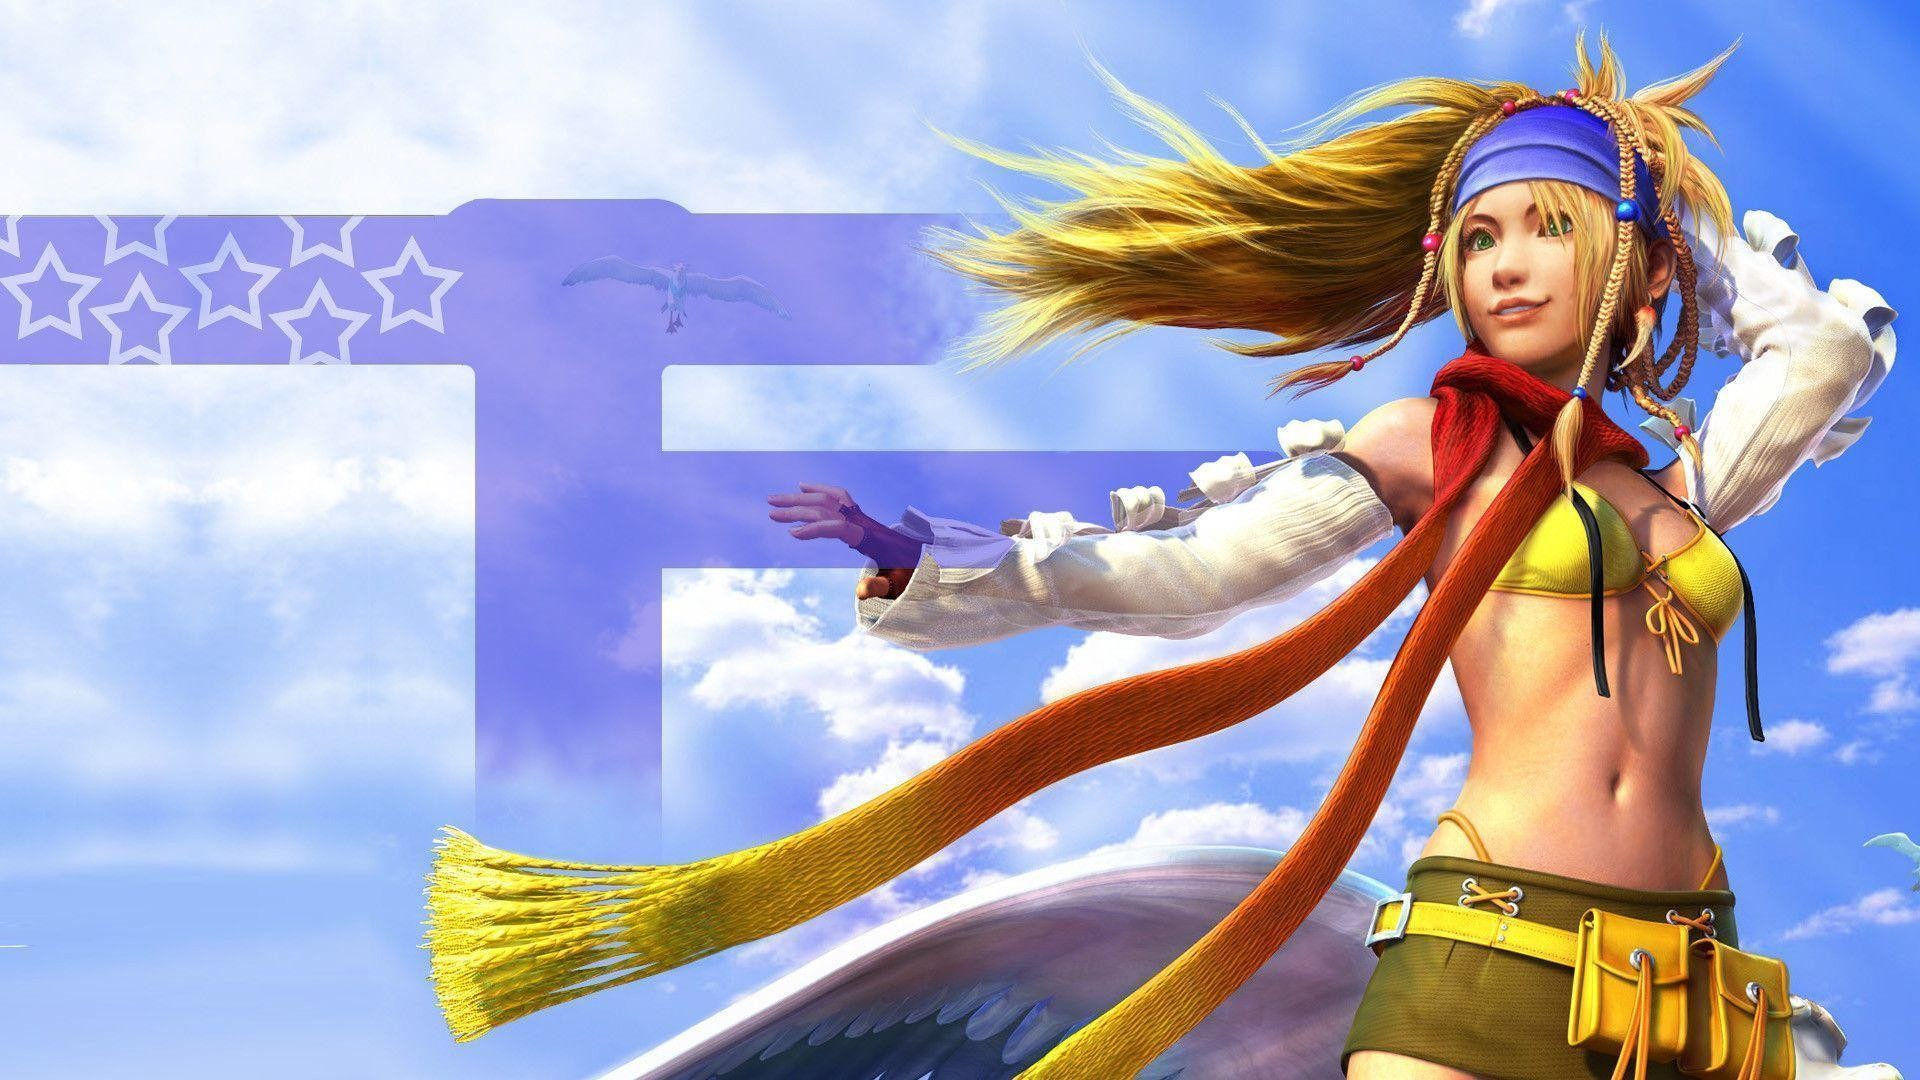 Final Fantasy X Wallpapers Hd 77 Images: Final Fantasy X HD Wallpaper (86+ Images